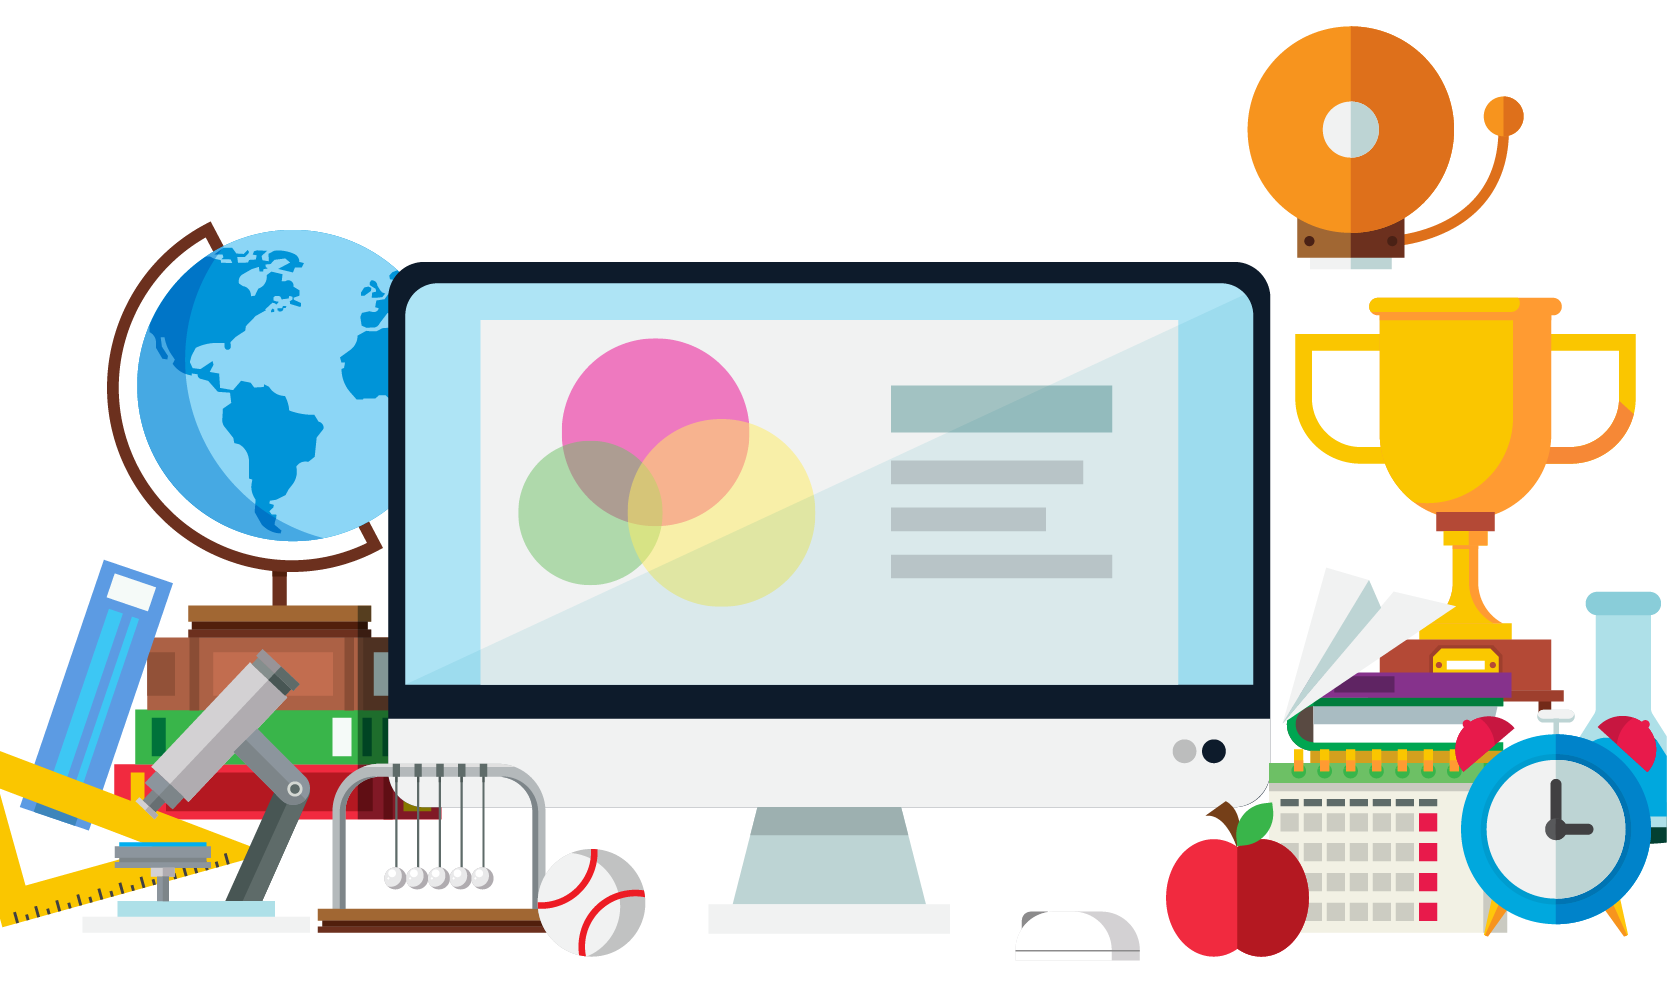 School supplies clipart free banner free stock Clip art - School supplies chalkboard background screen 1667*995 ... banner free stock